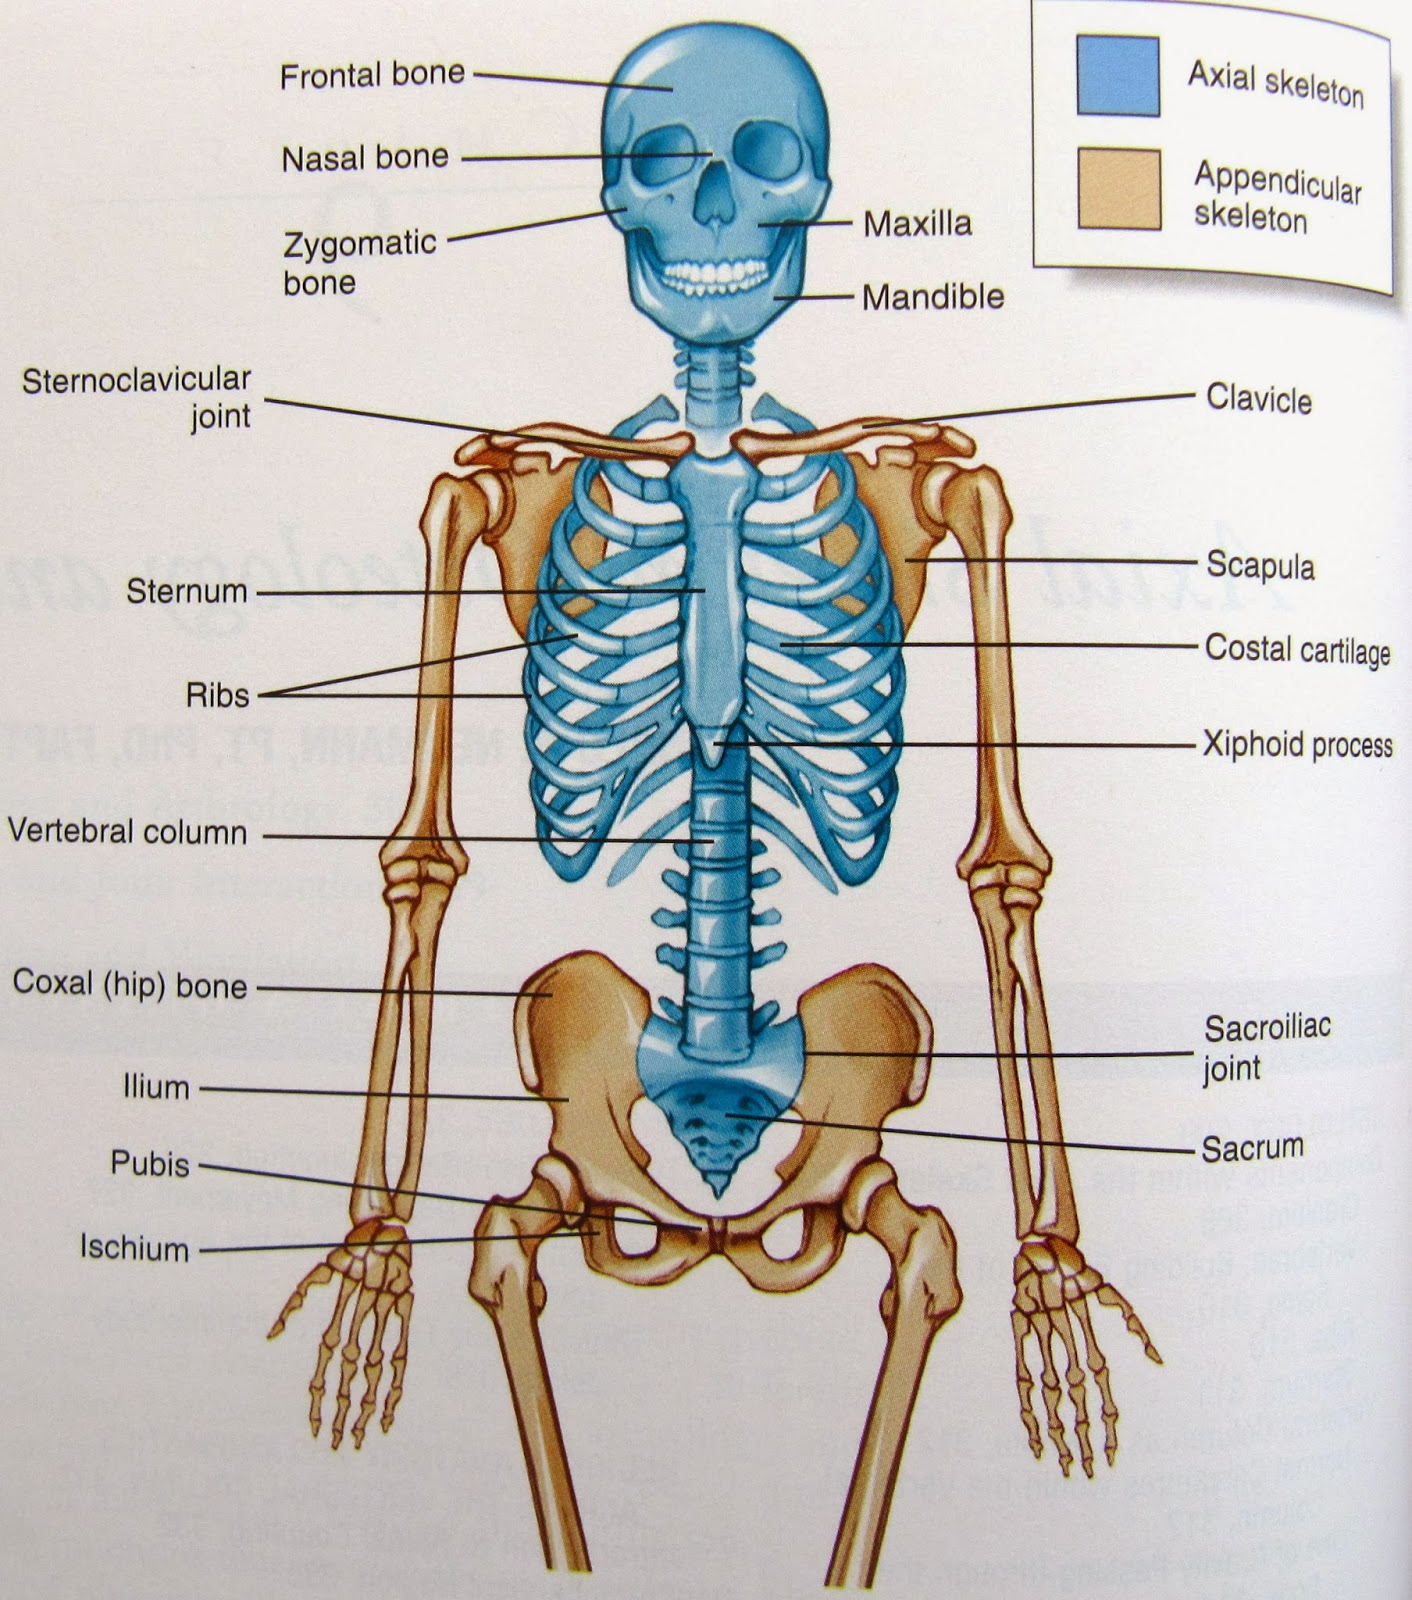 Facial Bones Diagram Not Labeled 91 240sx Headlight Wiring Science Is Wonderful Human Skeleton